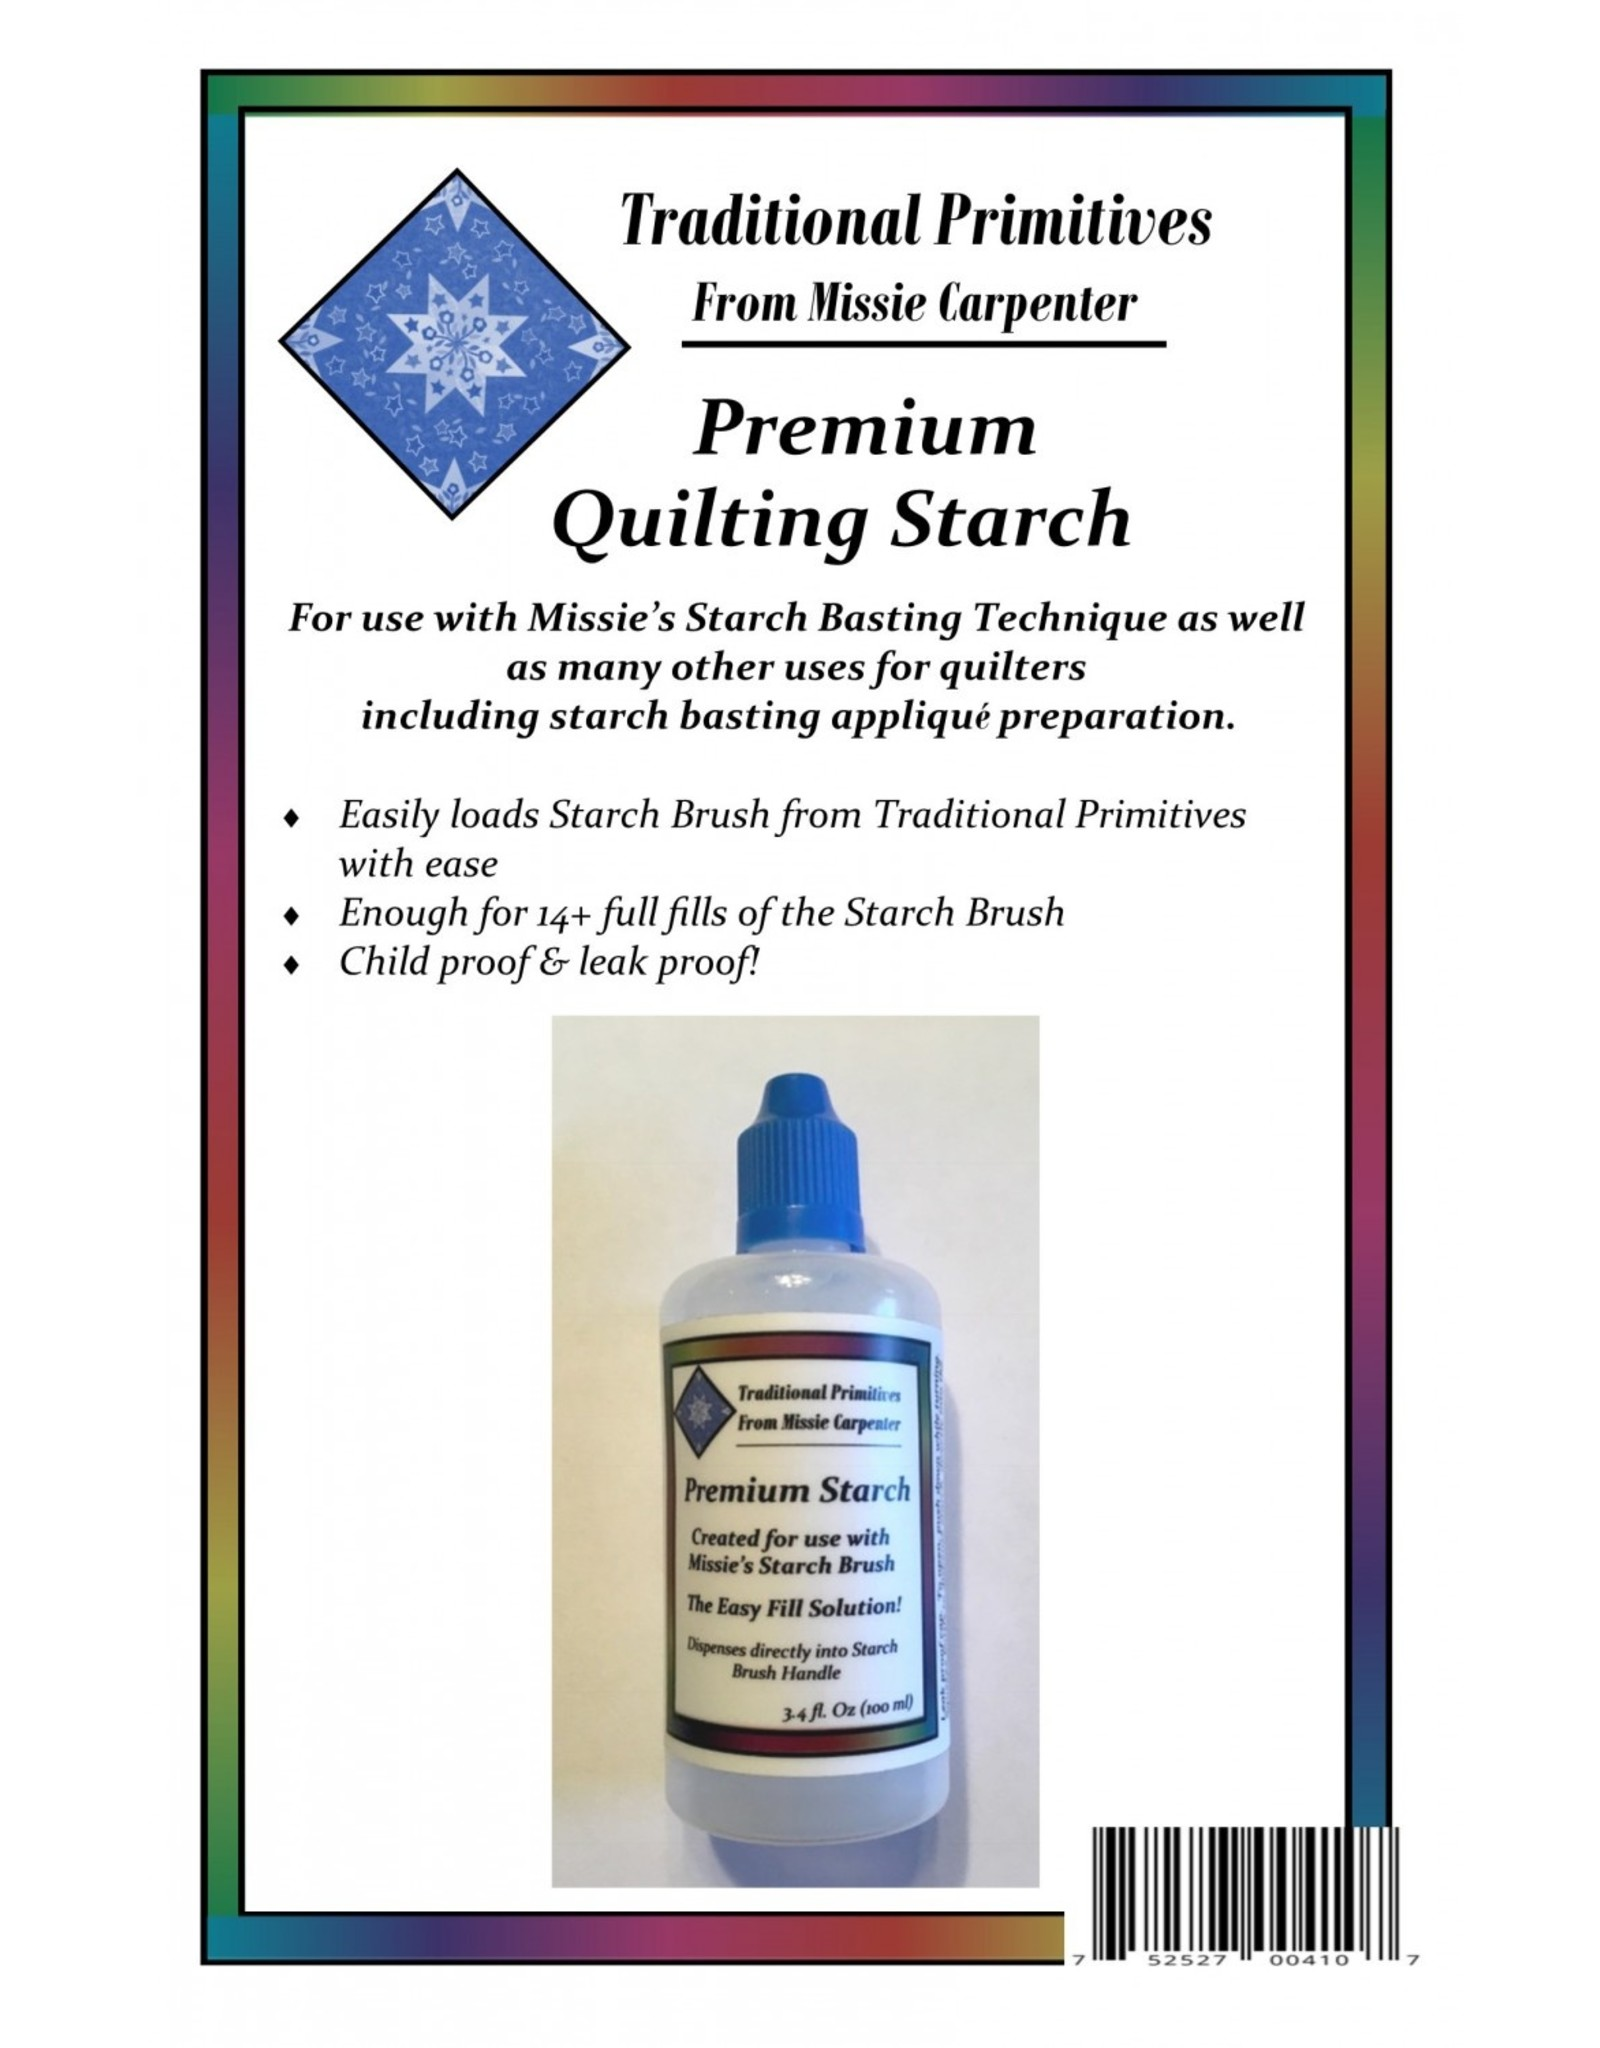 Traditional Primitives Premium Quilting Starch